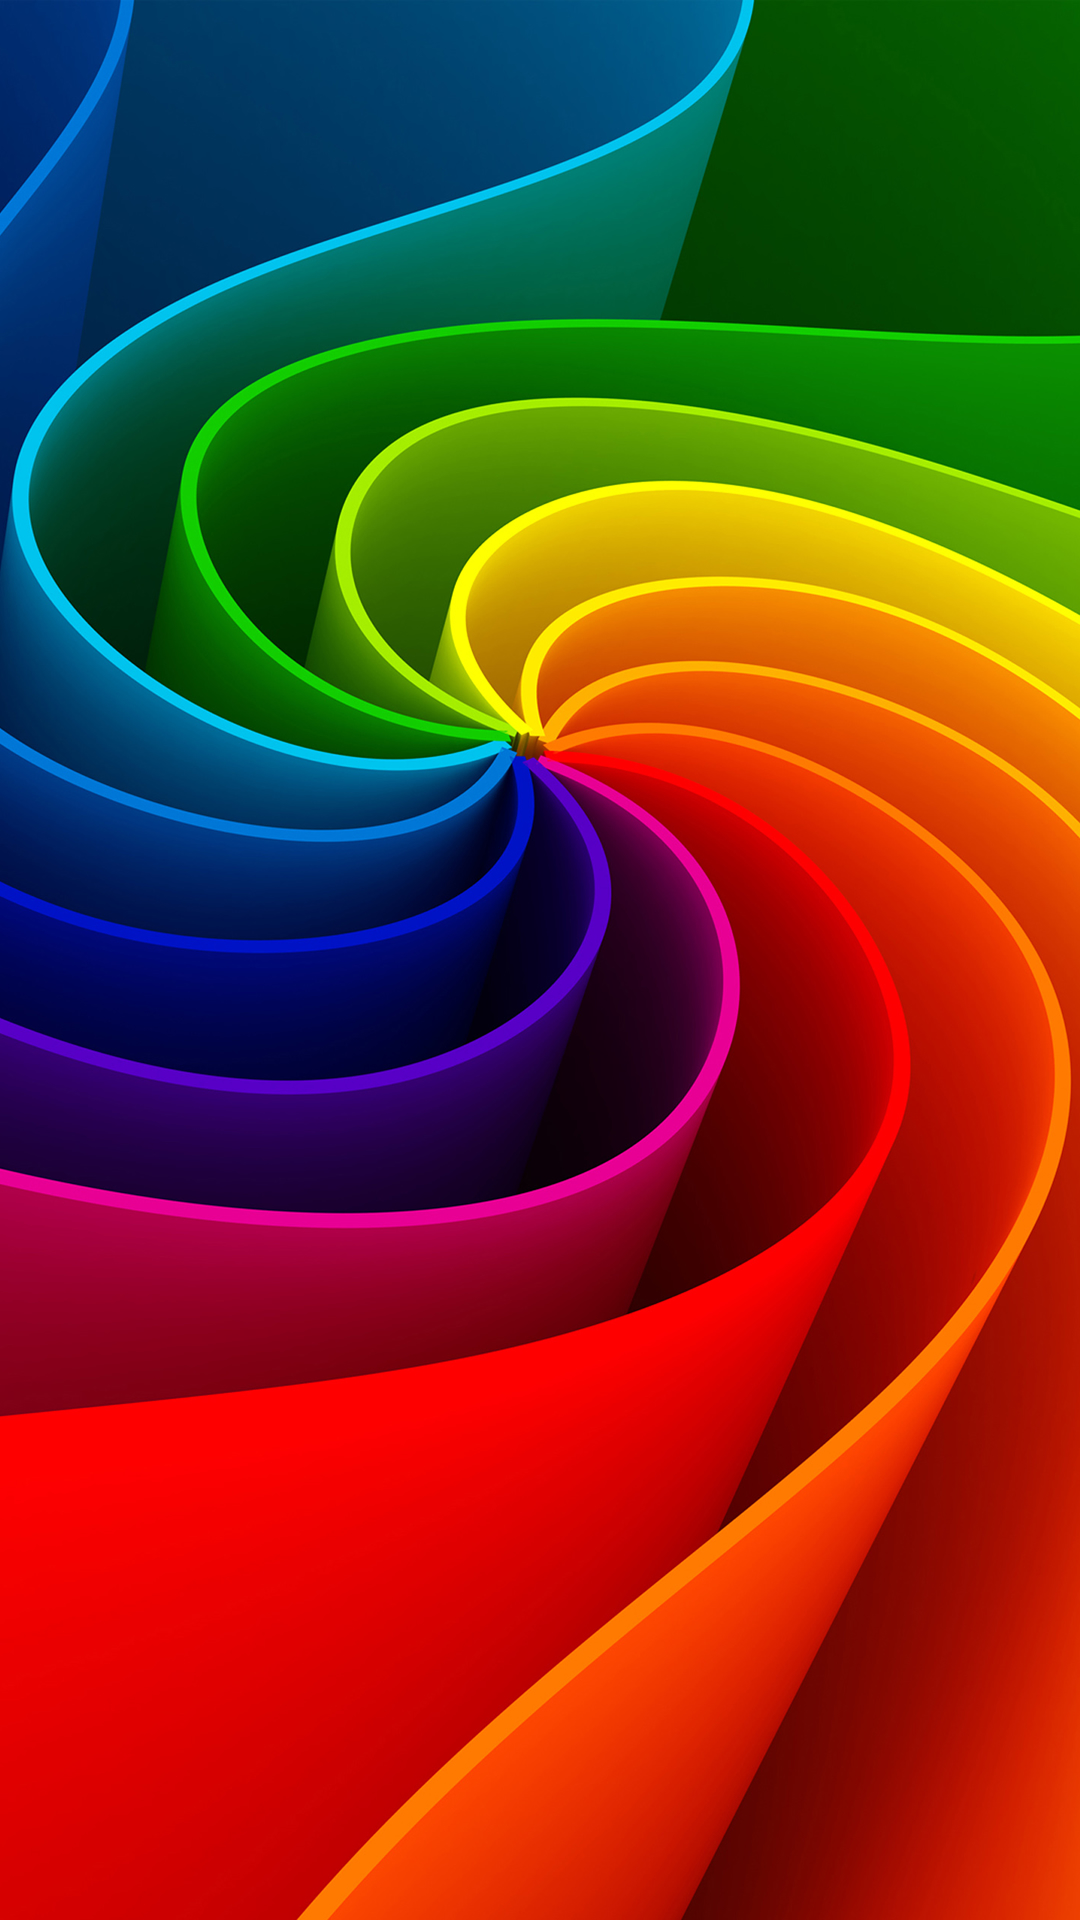 Colorful 3D Swirl iPhone 6 Wallpaper iPhone 6 Wallpaper iPhone 6 1080x1920